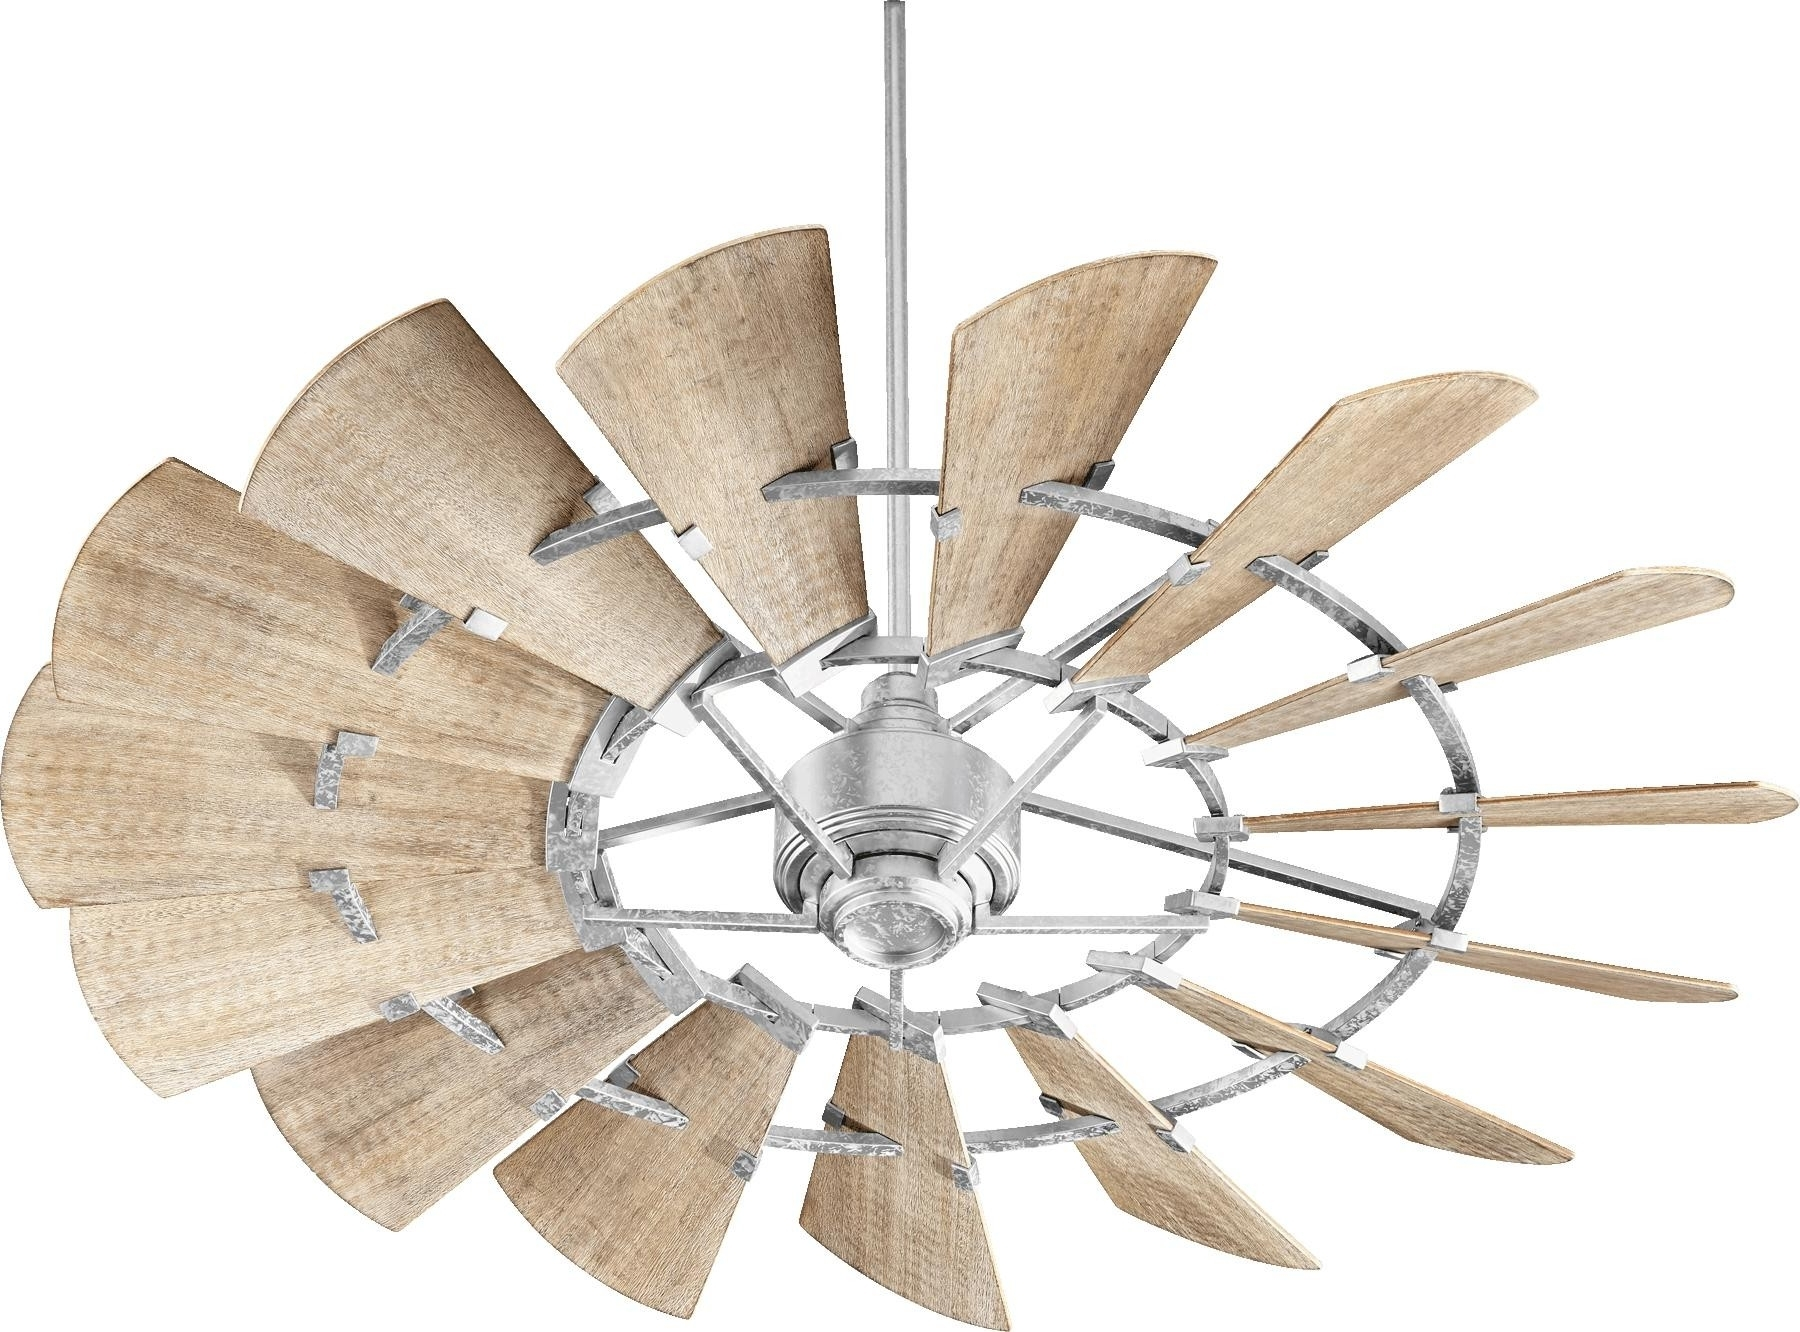 2018 Quorum Windmill Ceiling Fan Model 196015 9 In Galvanized With Quorum Outdoor Ceiling Fans (Gallery 10 of 20)